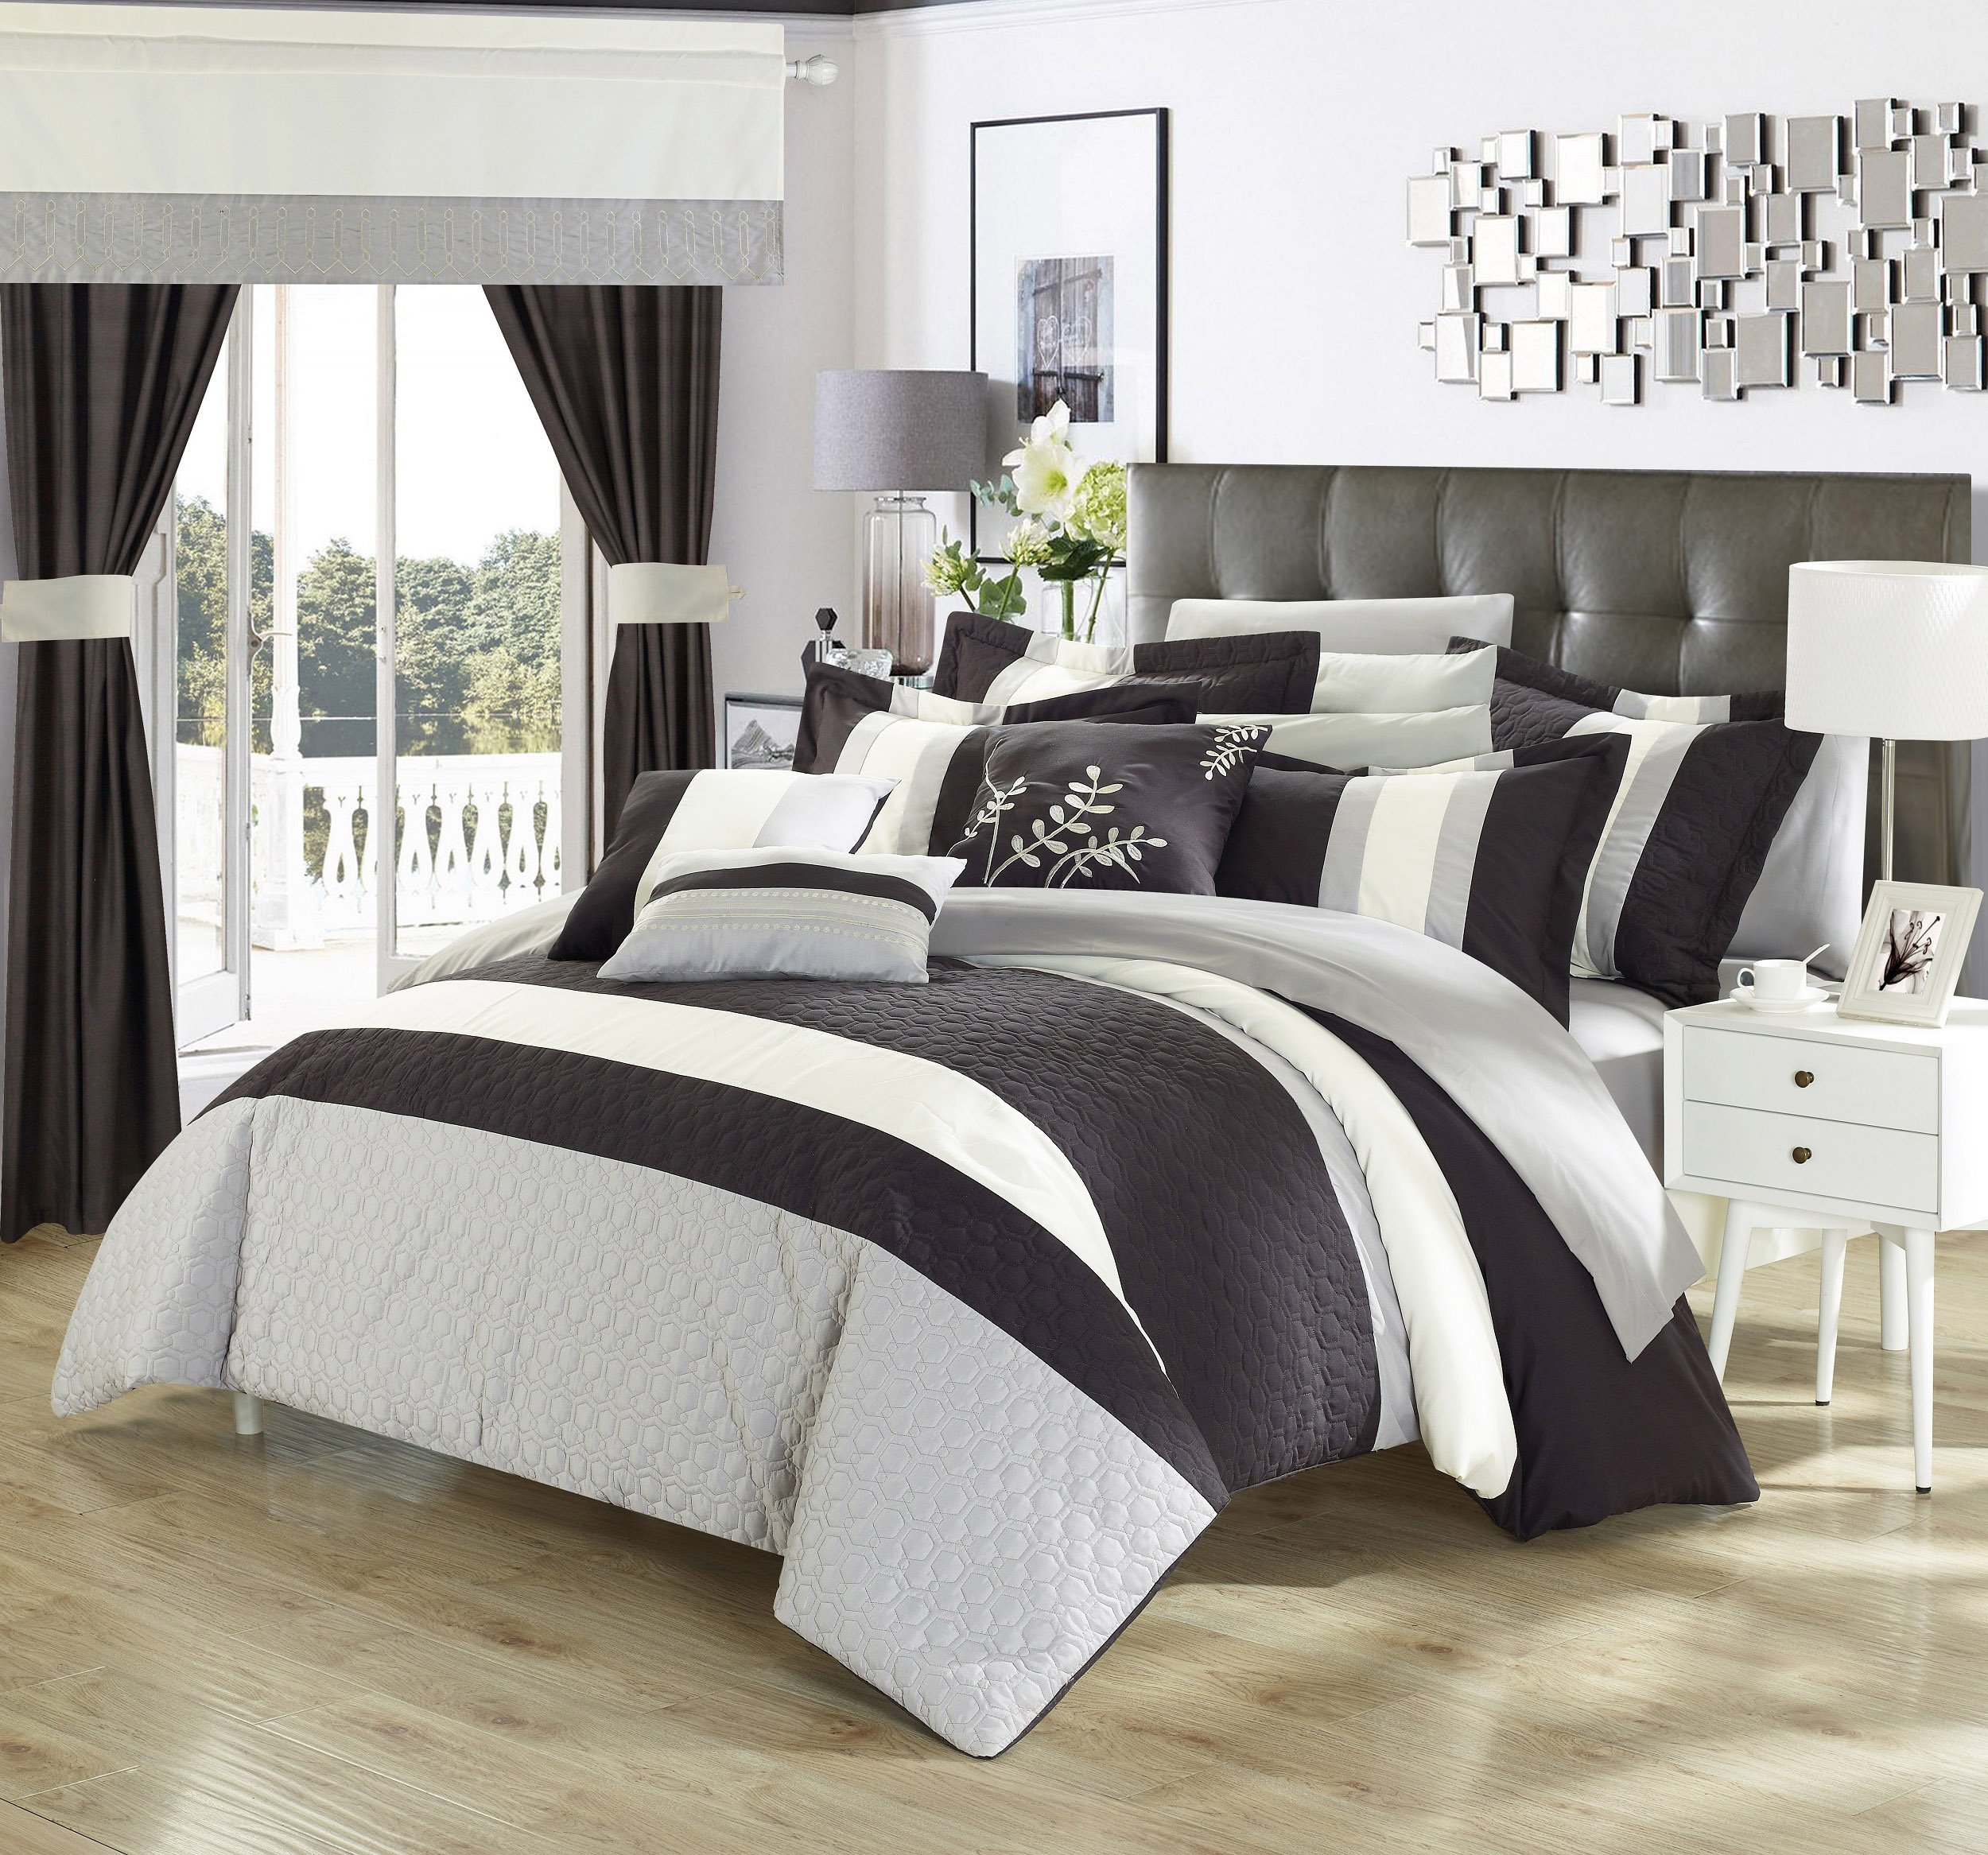 Perfect Home 24 Piece Emilio Complete Bedroom Set with Octagon Embroidery Color Block pattern. decor pillows, window treatments King Bed In a Bag Comforter Set Black With sheet set